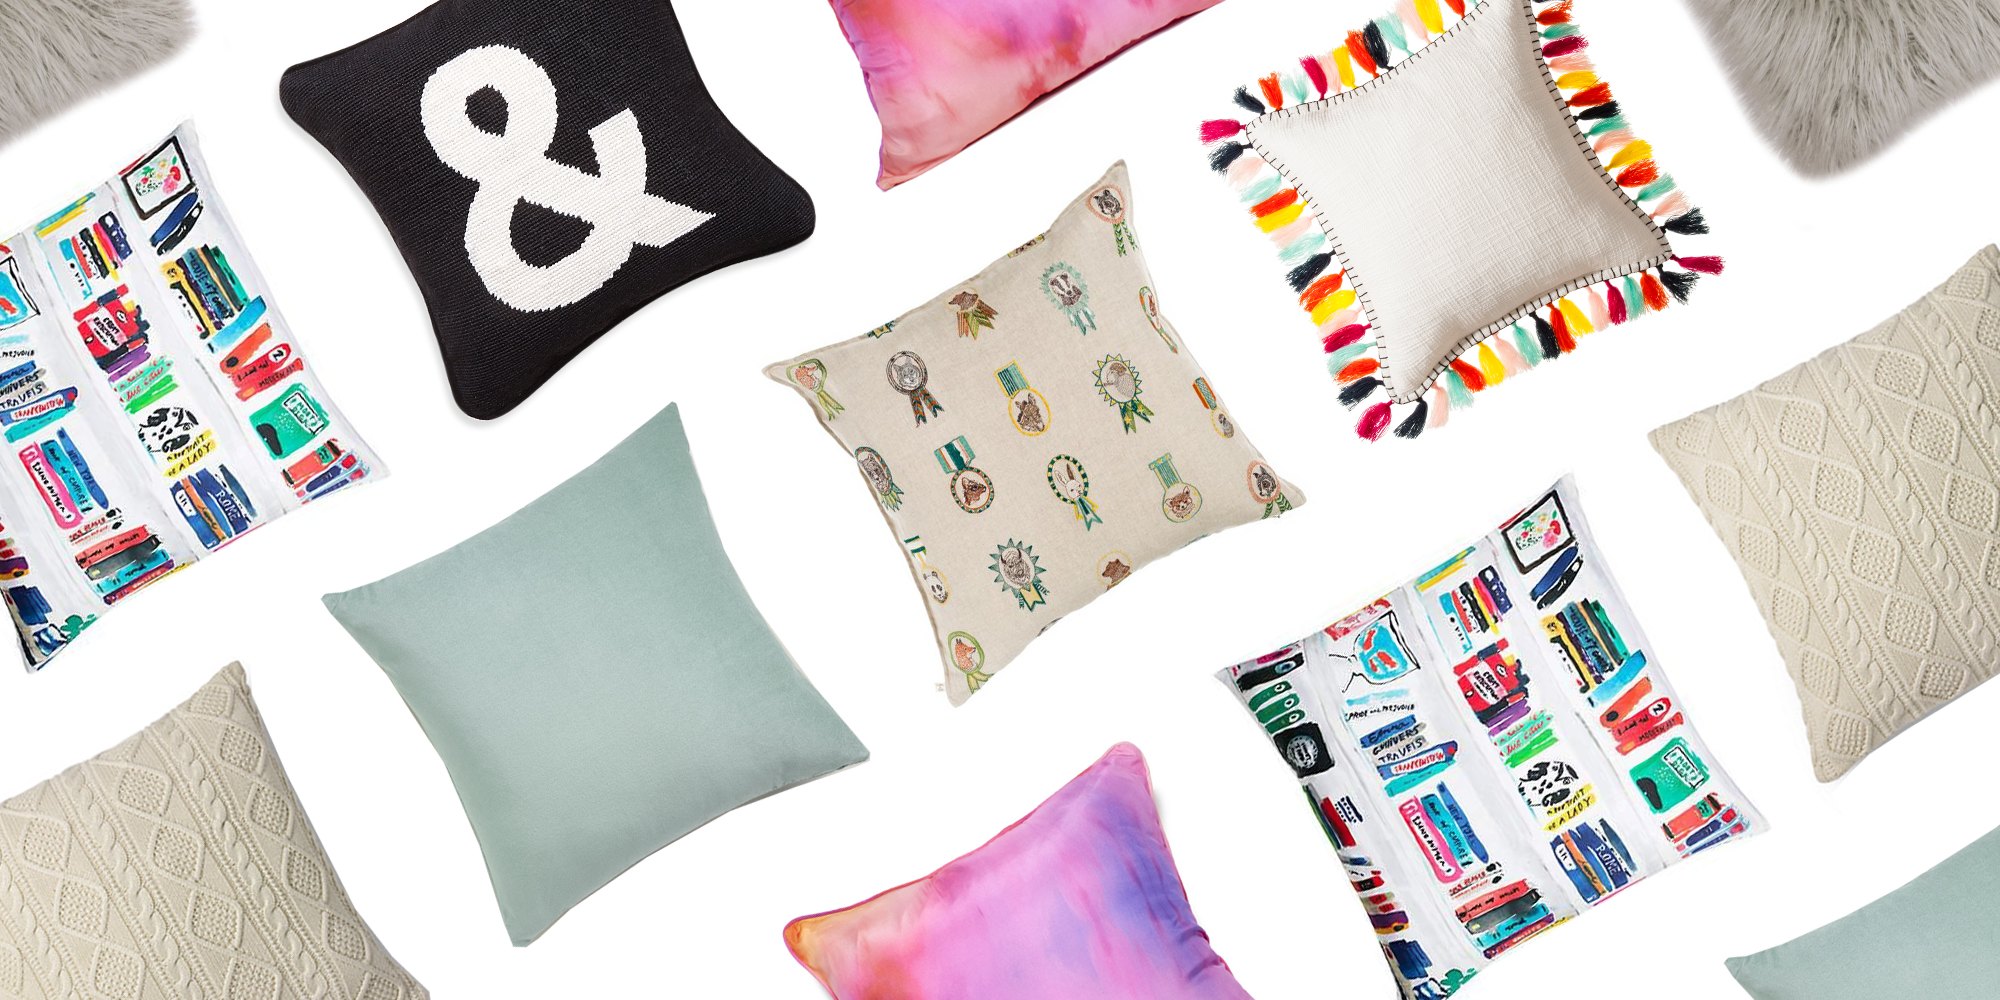 How To Choose The Right Throw Pillows : 14 Best Decorative Throw Pillows in 2017 - Comfy Couch Throw Pillows